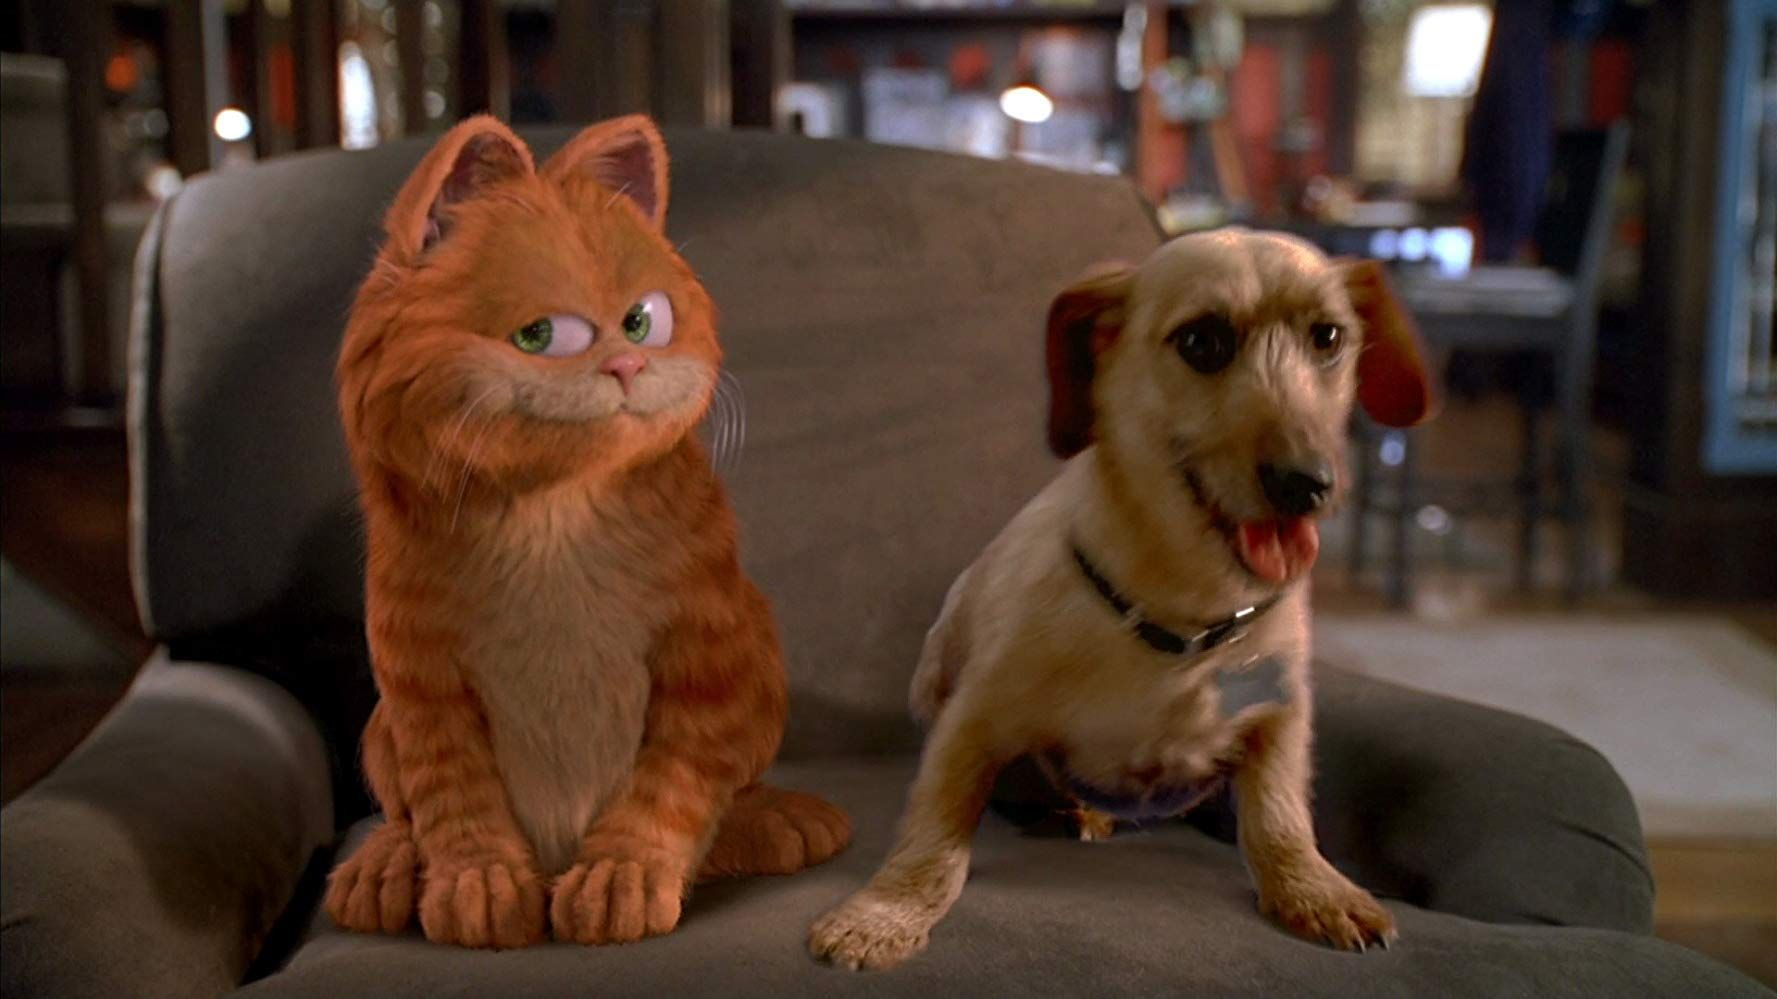 Diziger on Garfield the movie, Garfield wallpaper, Cat movie